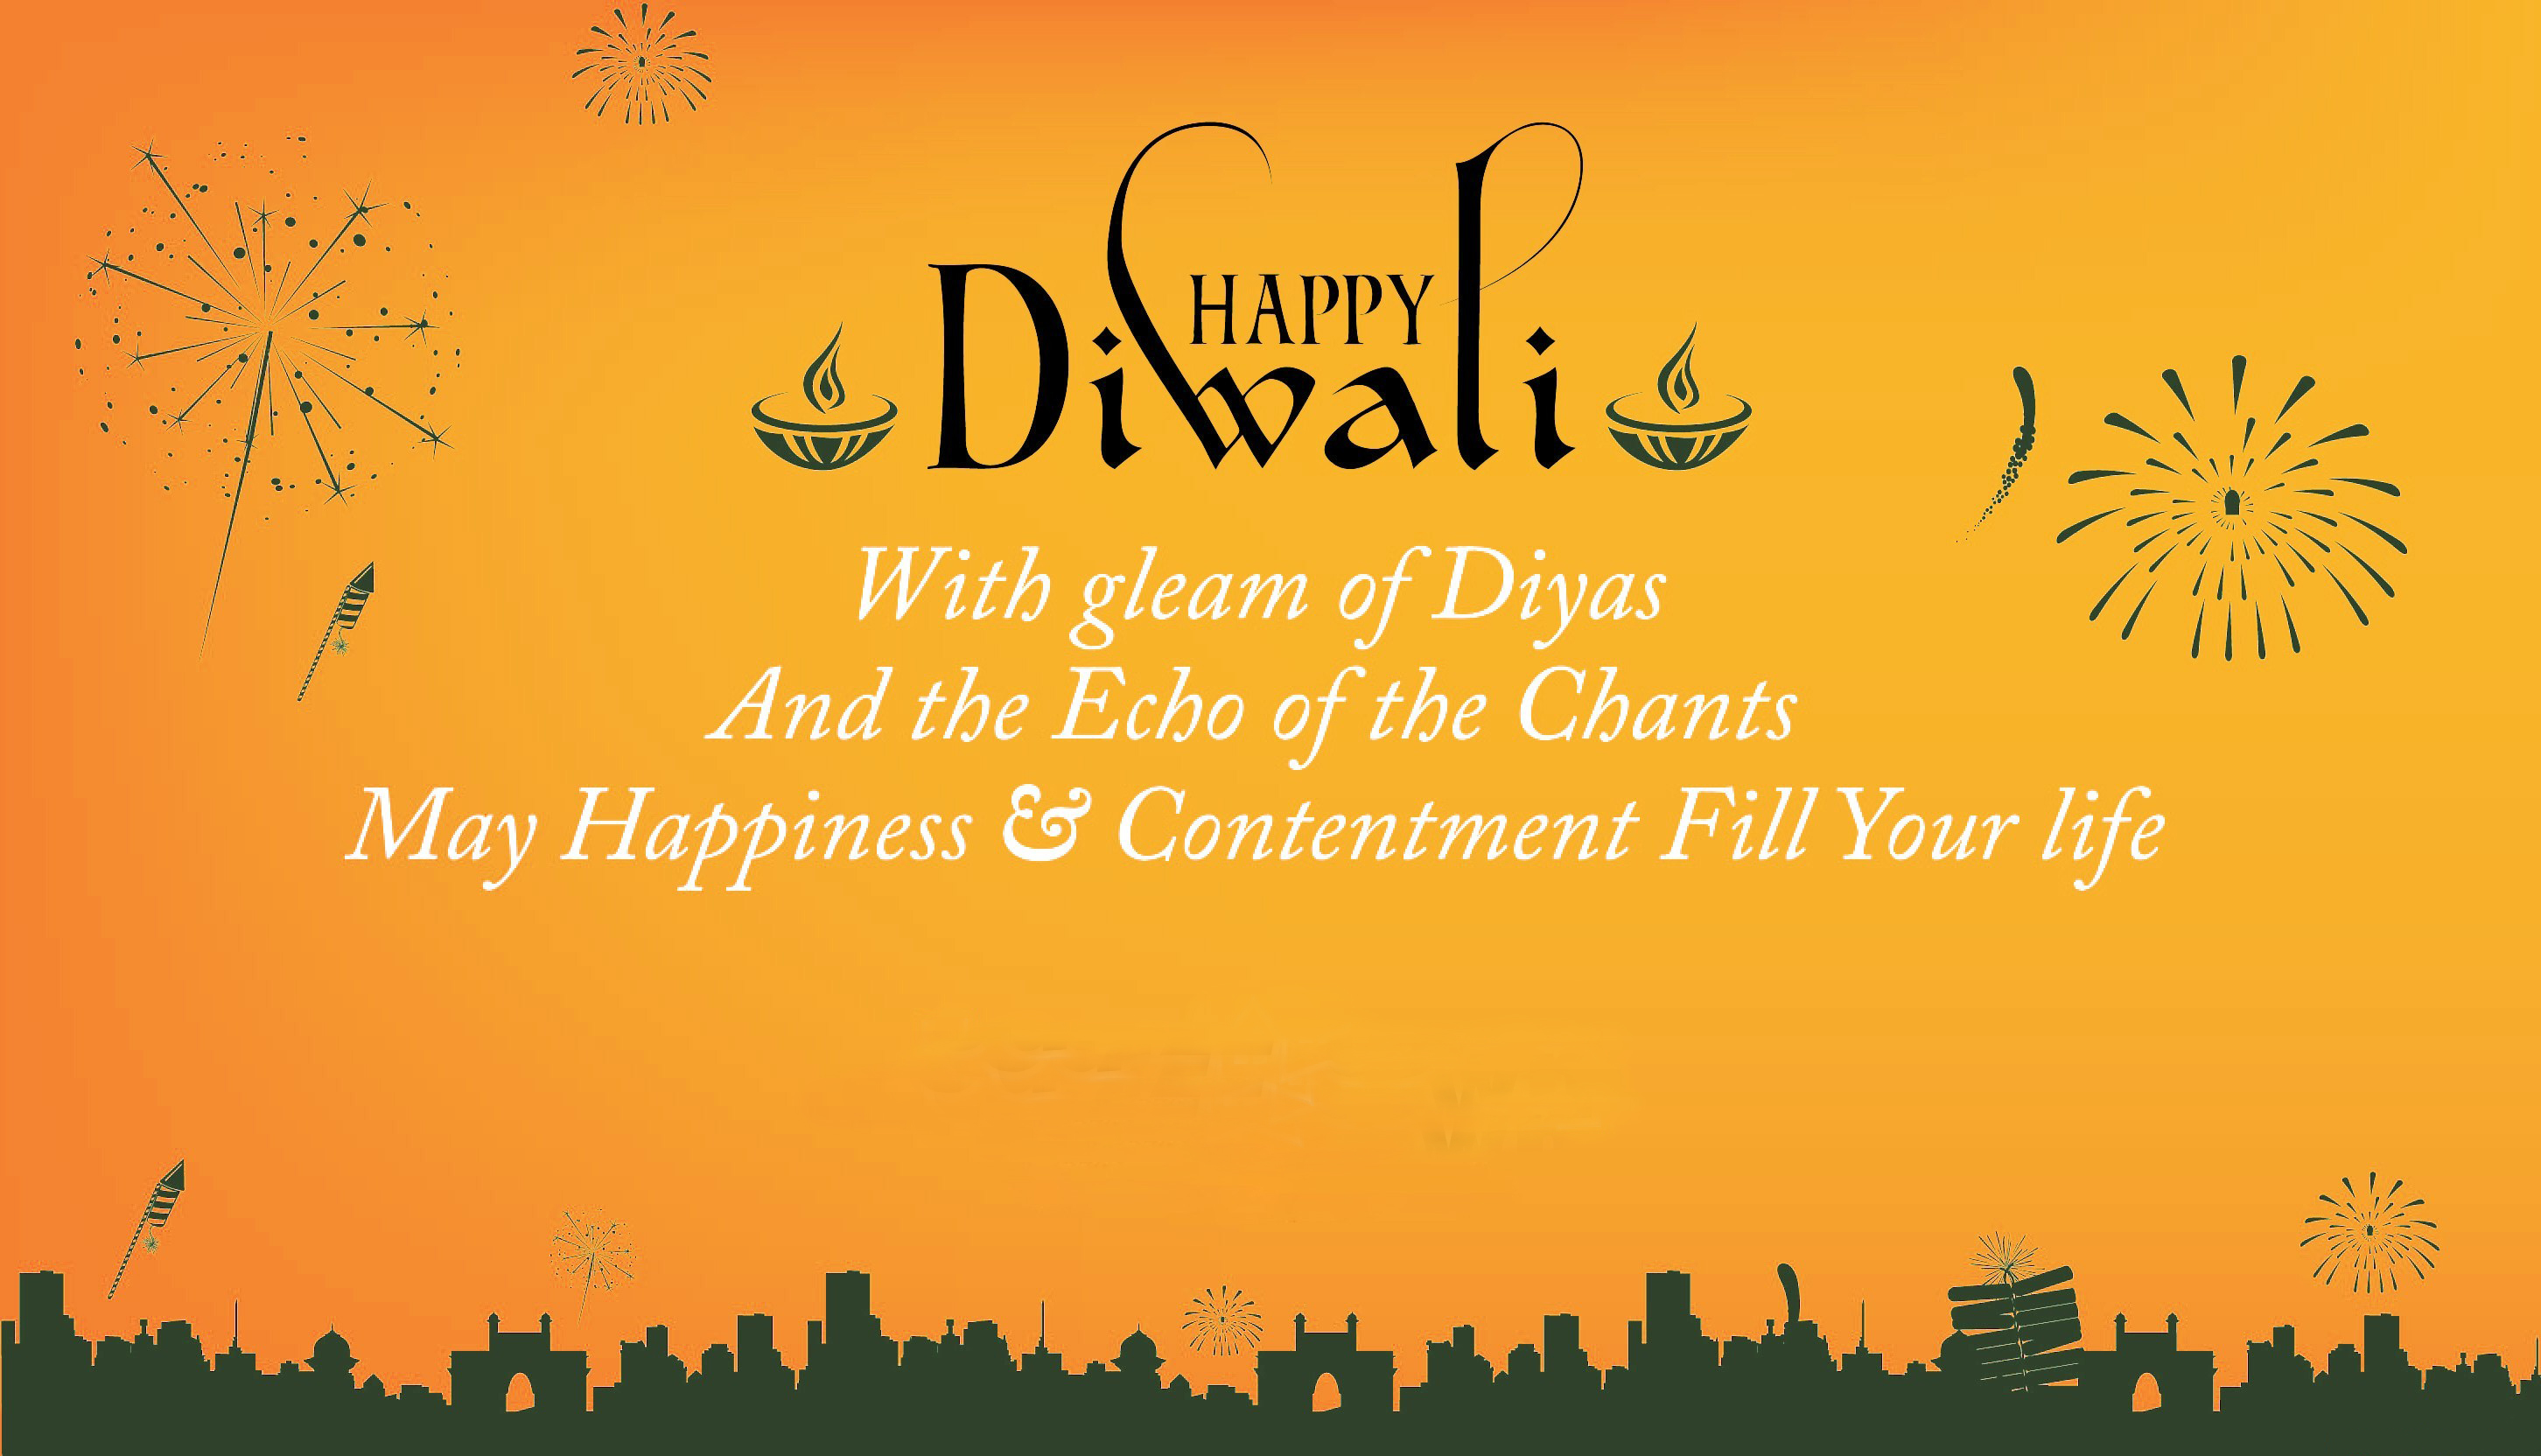 happy diwali in bangali wishes